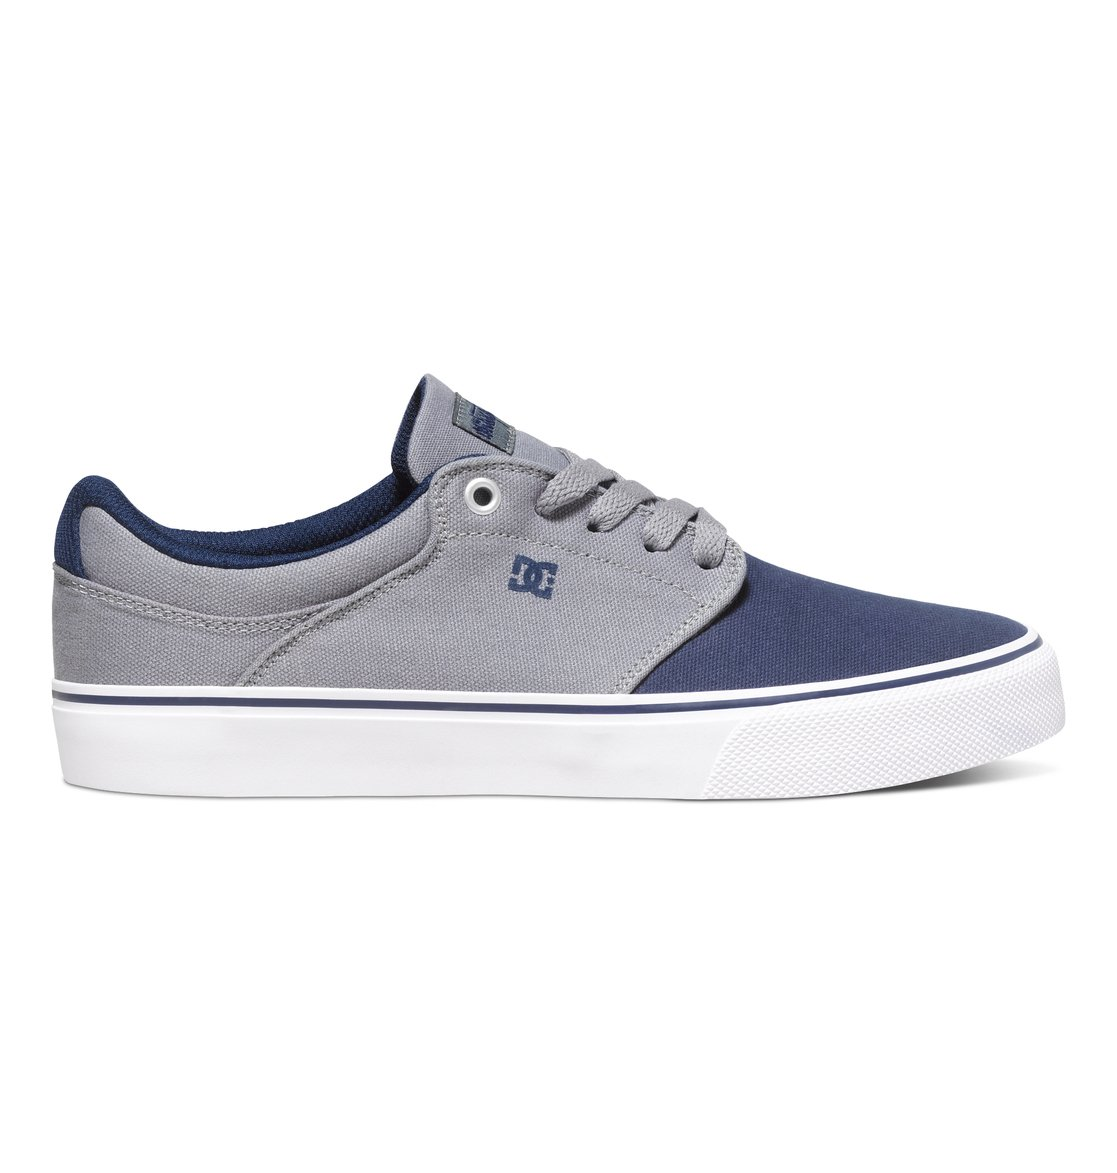 DC Hombre Mikey Taylor Vulc Mikey Taylor Signature Skate Zapatos